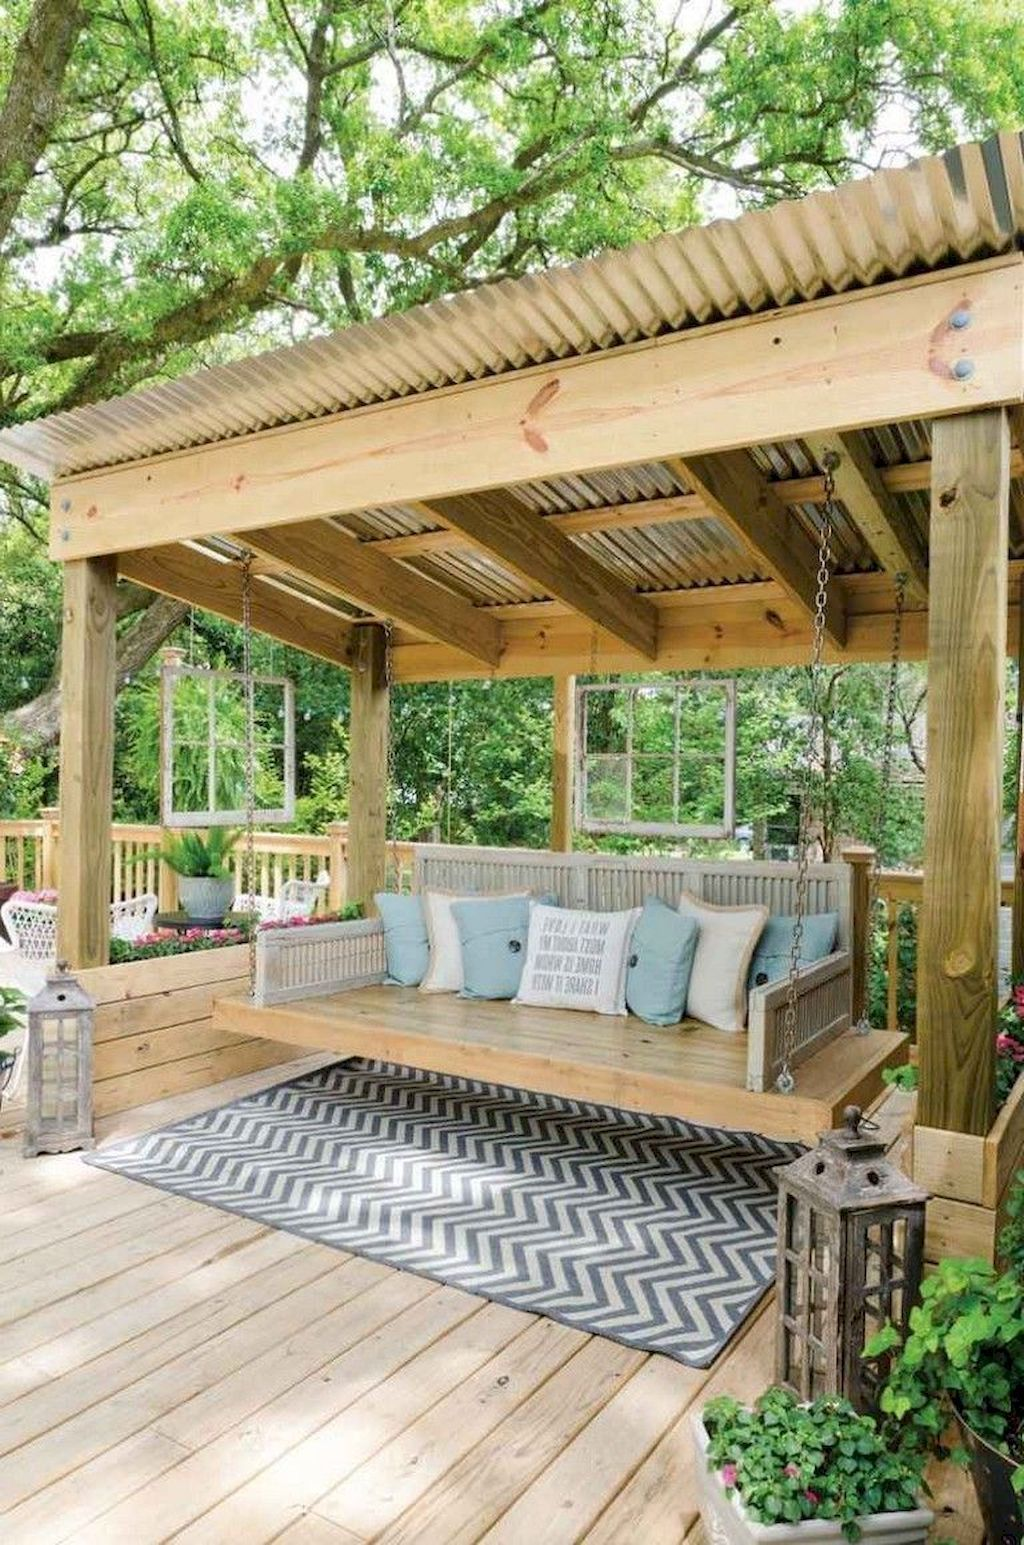 20+ Comfy Spring Backyard Ideas With A Seating Area that Make You Feel Relax